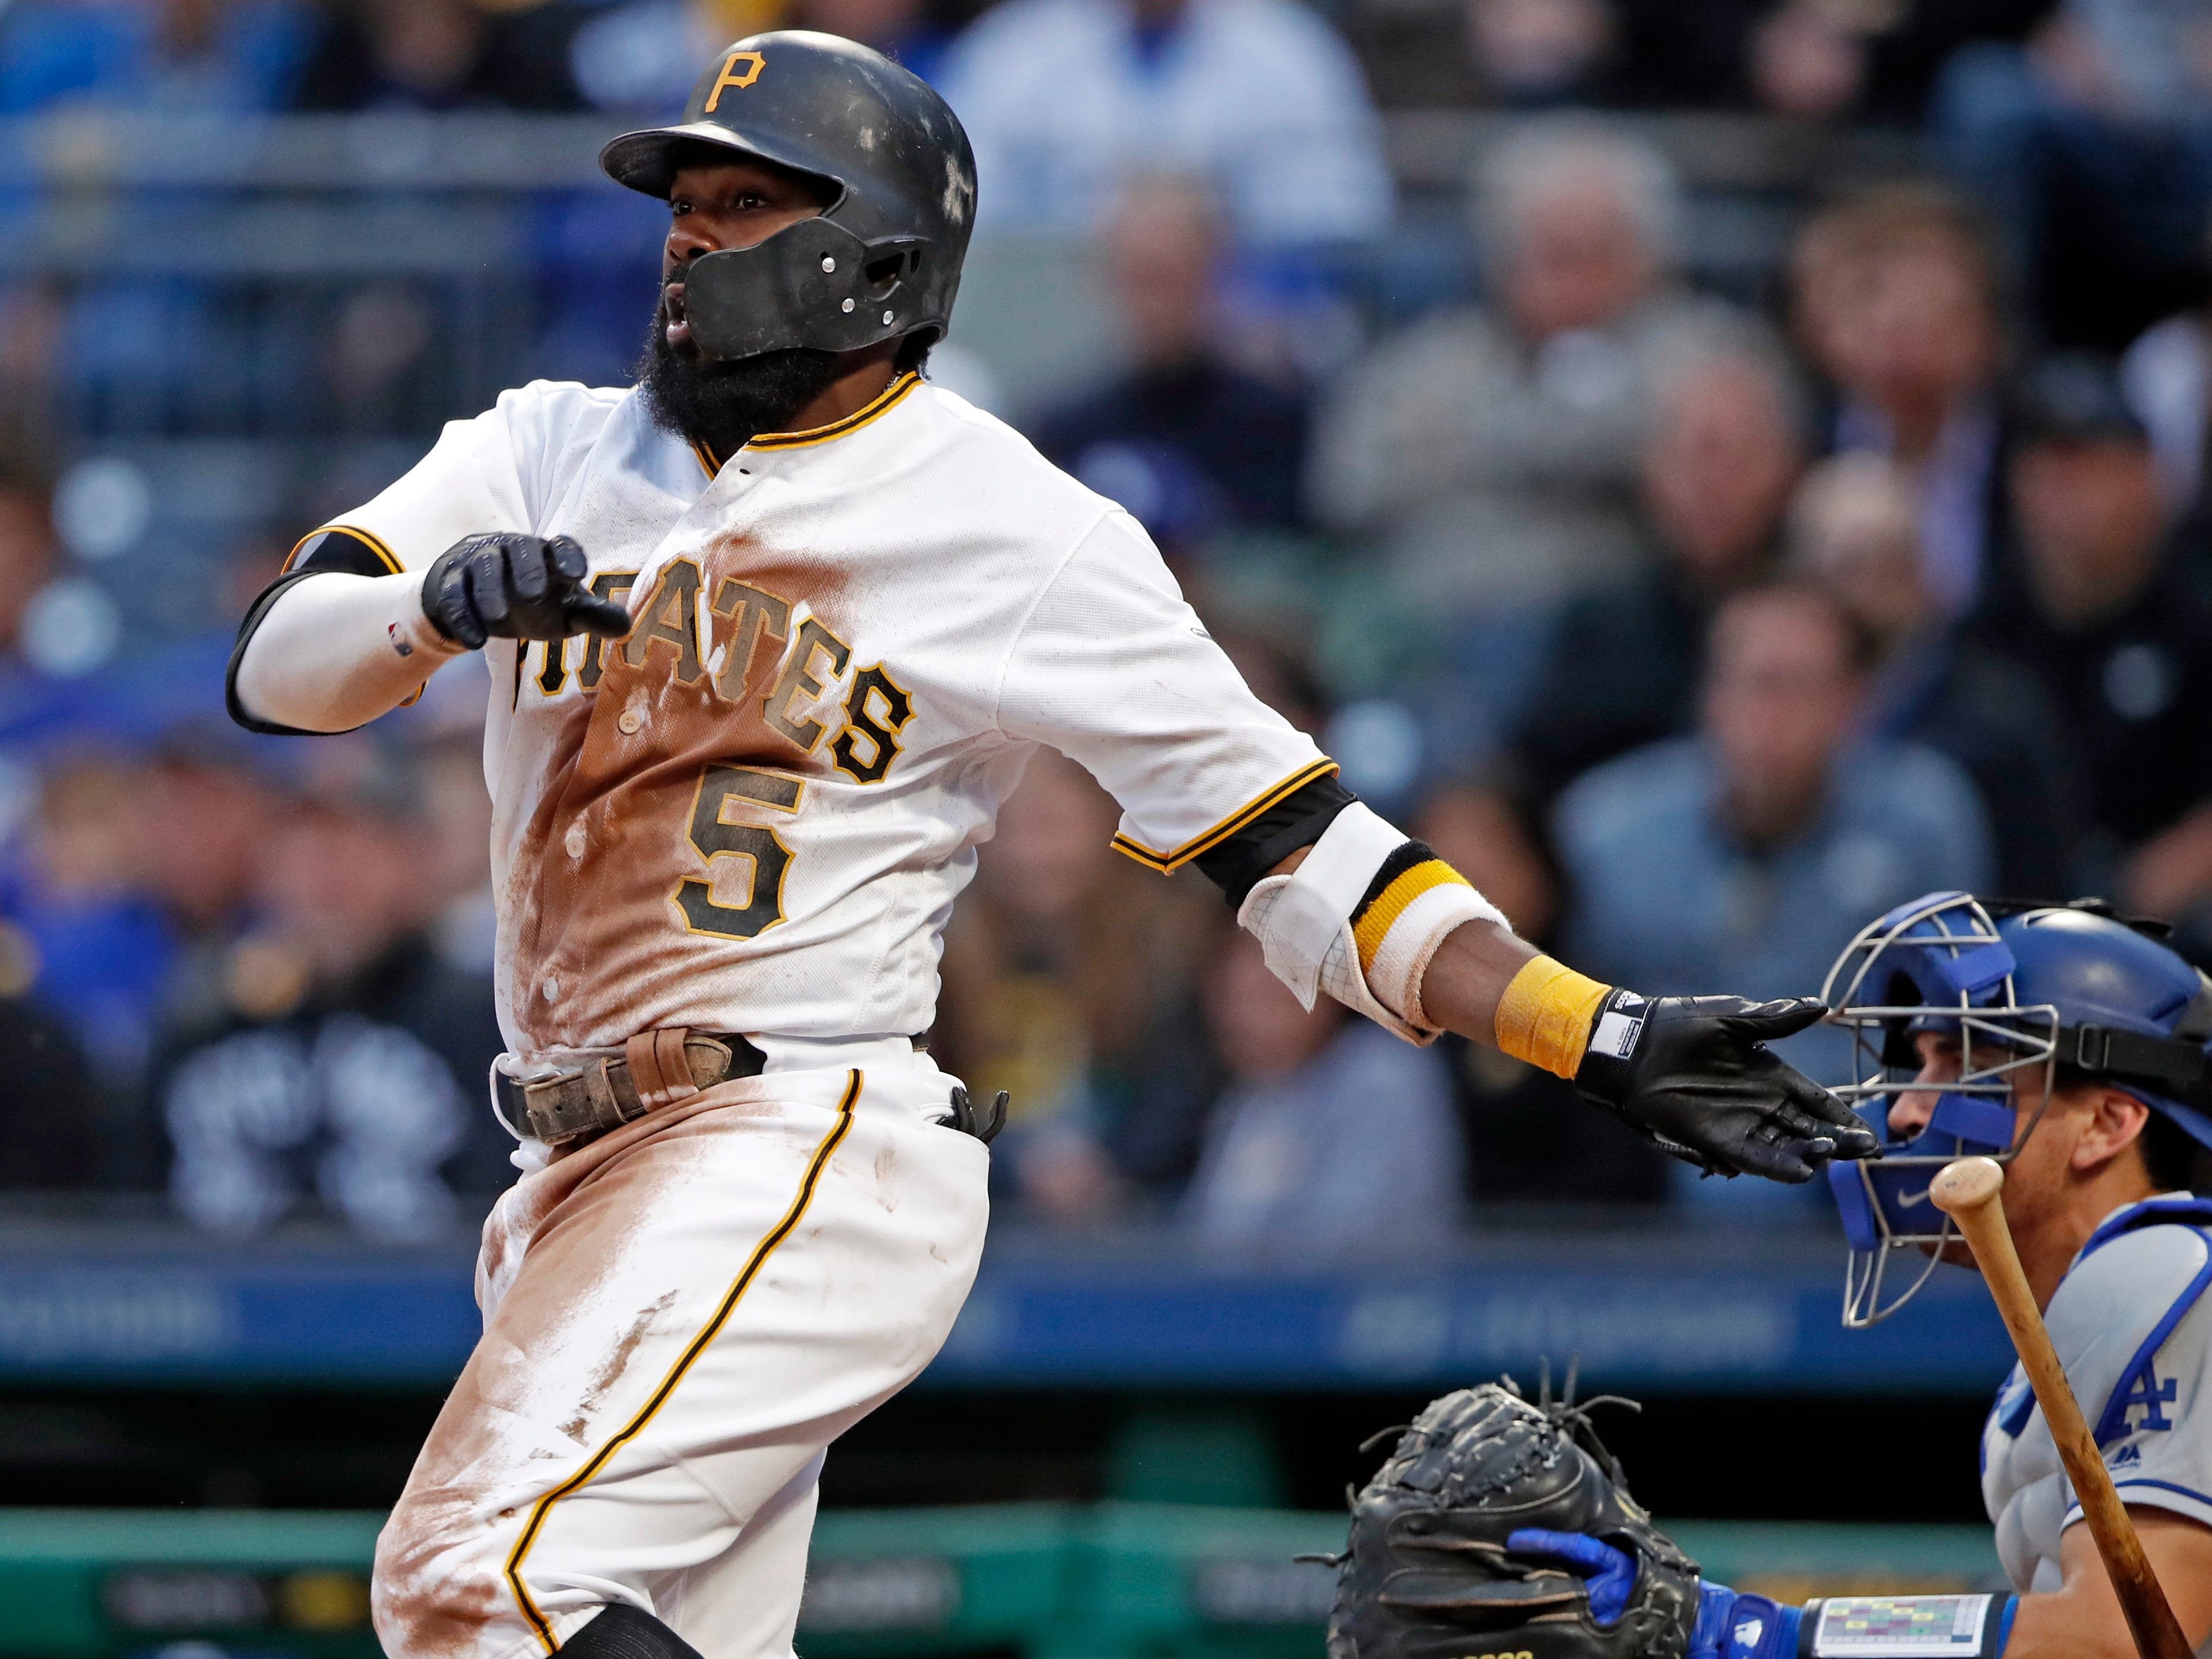 Pittsburgh Pirates' Josh Harrison watches his three-run double off Los Angeles Dodgers starting pitcher Caleb Ferguson during the second inning of a baseball game in Pittsburgh, Wednesday, June 6, 2018.